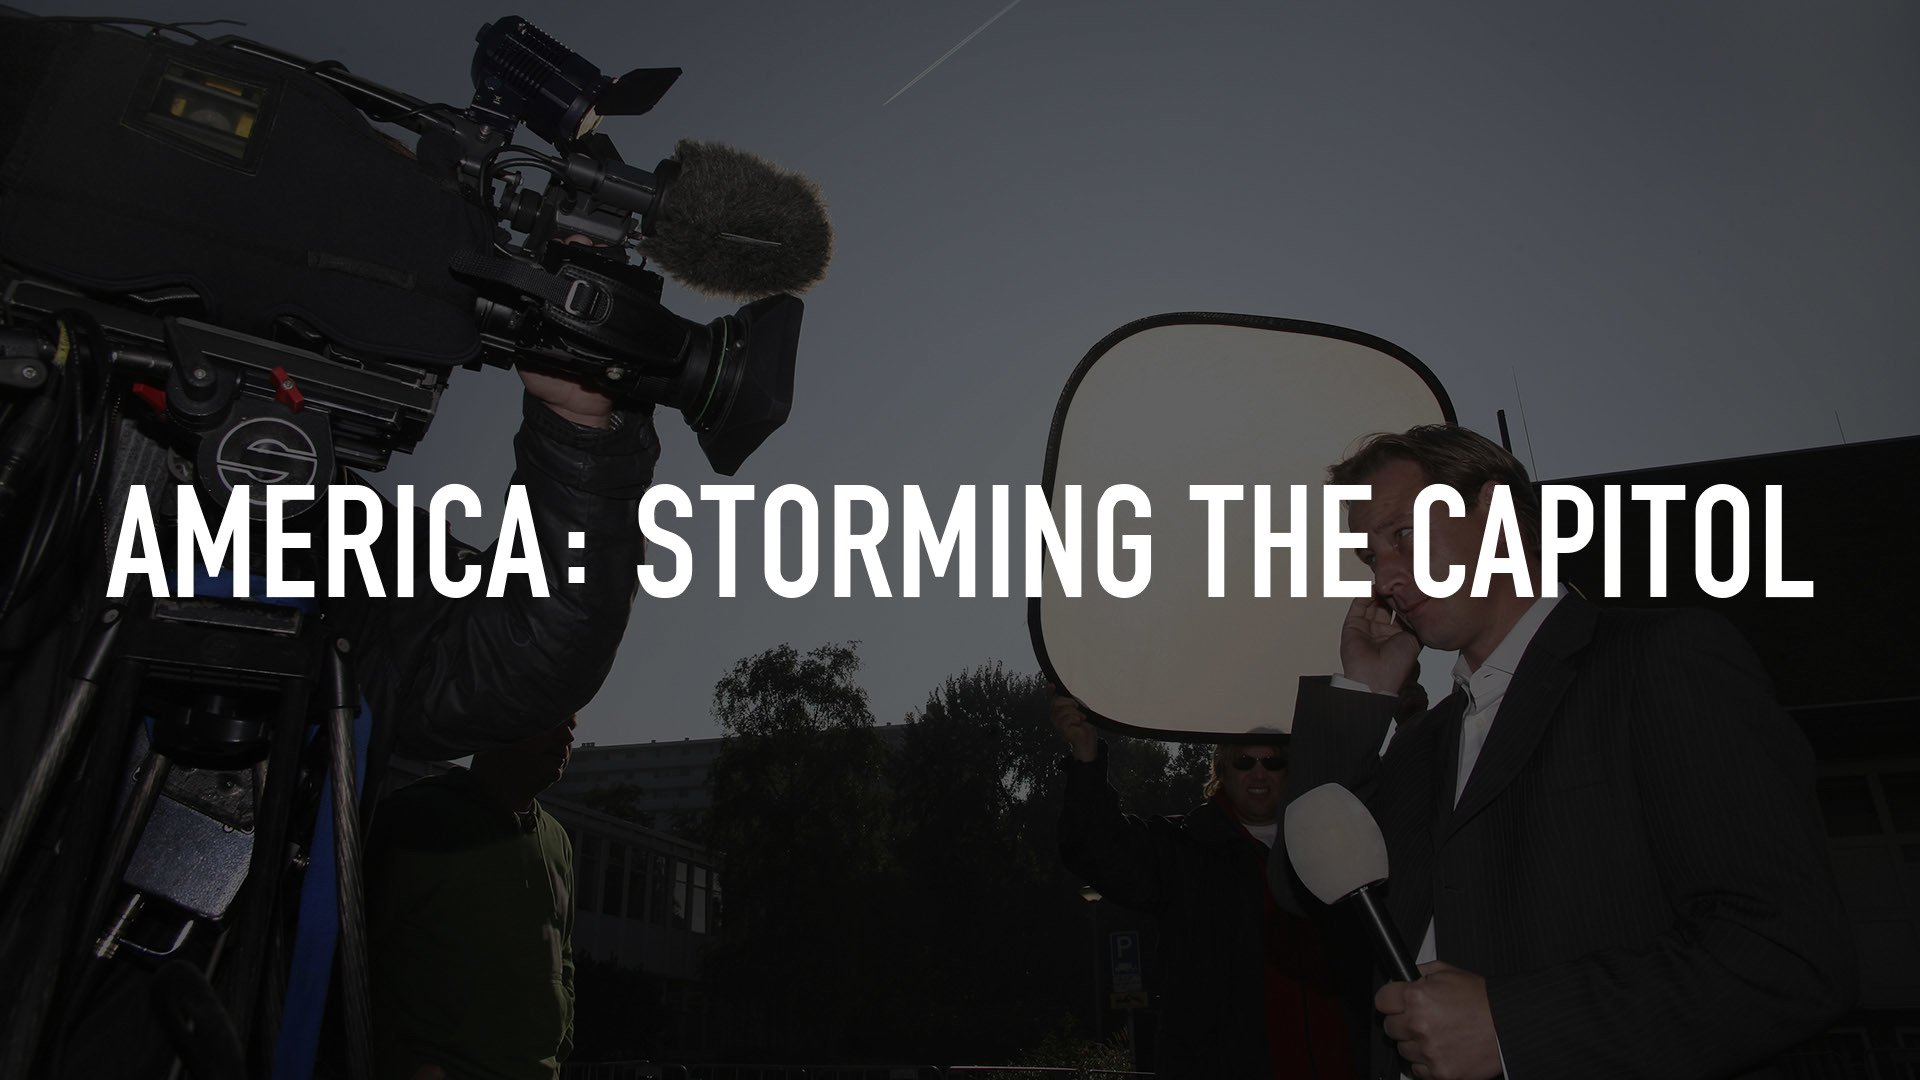 America: Storming the Capitol